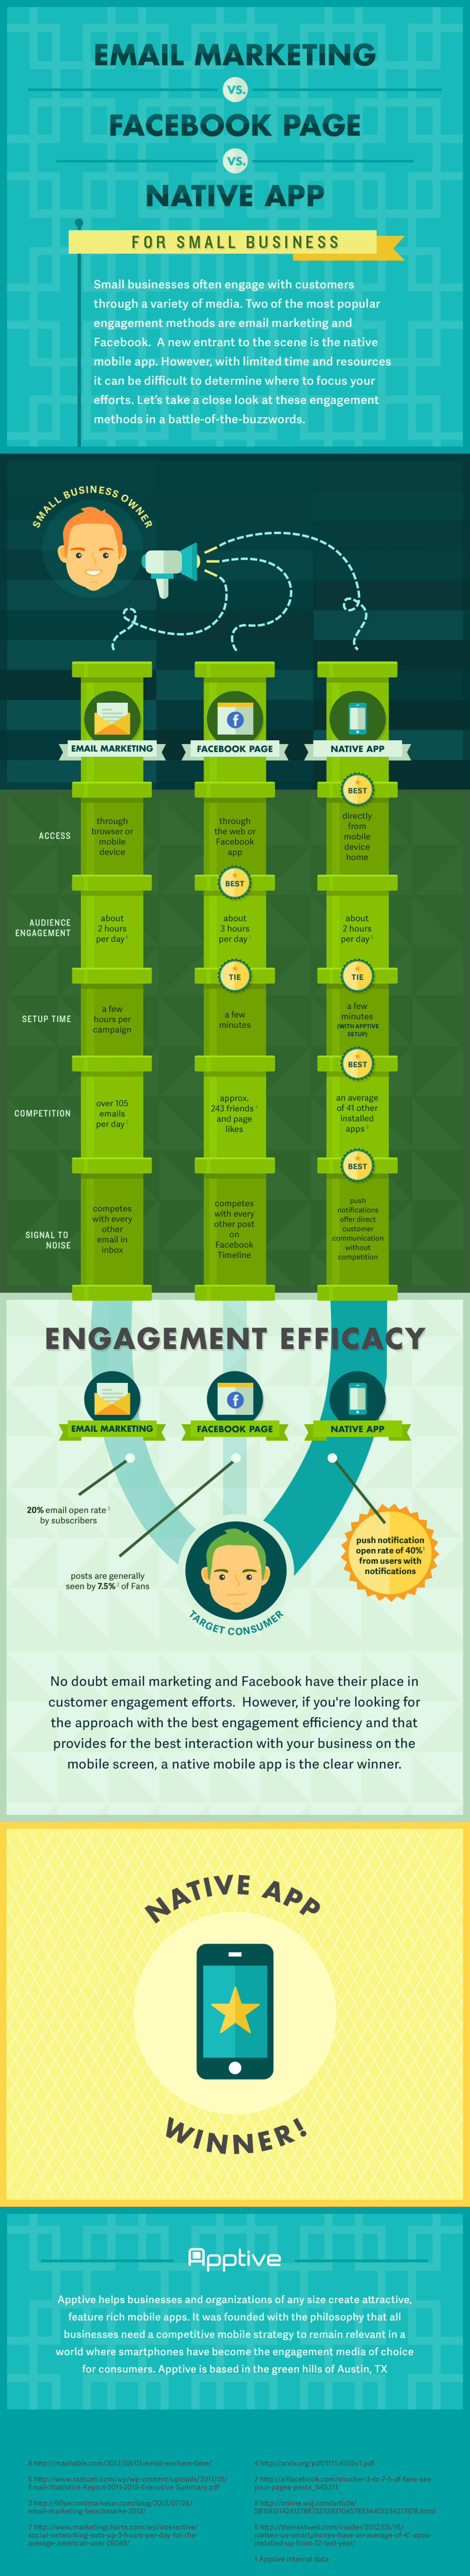 Email Marketing vs. Facebook Page vs. Native App Infographic